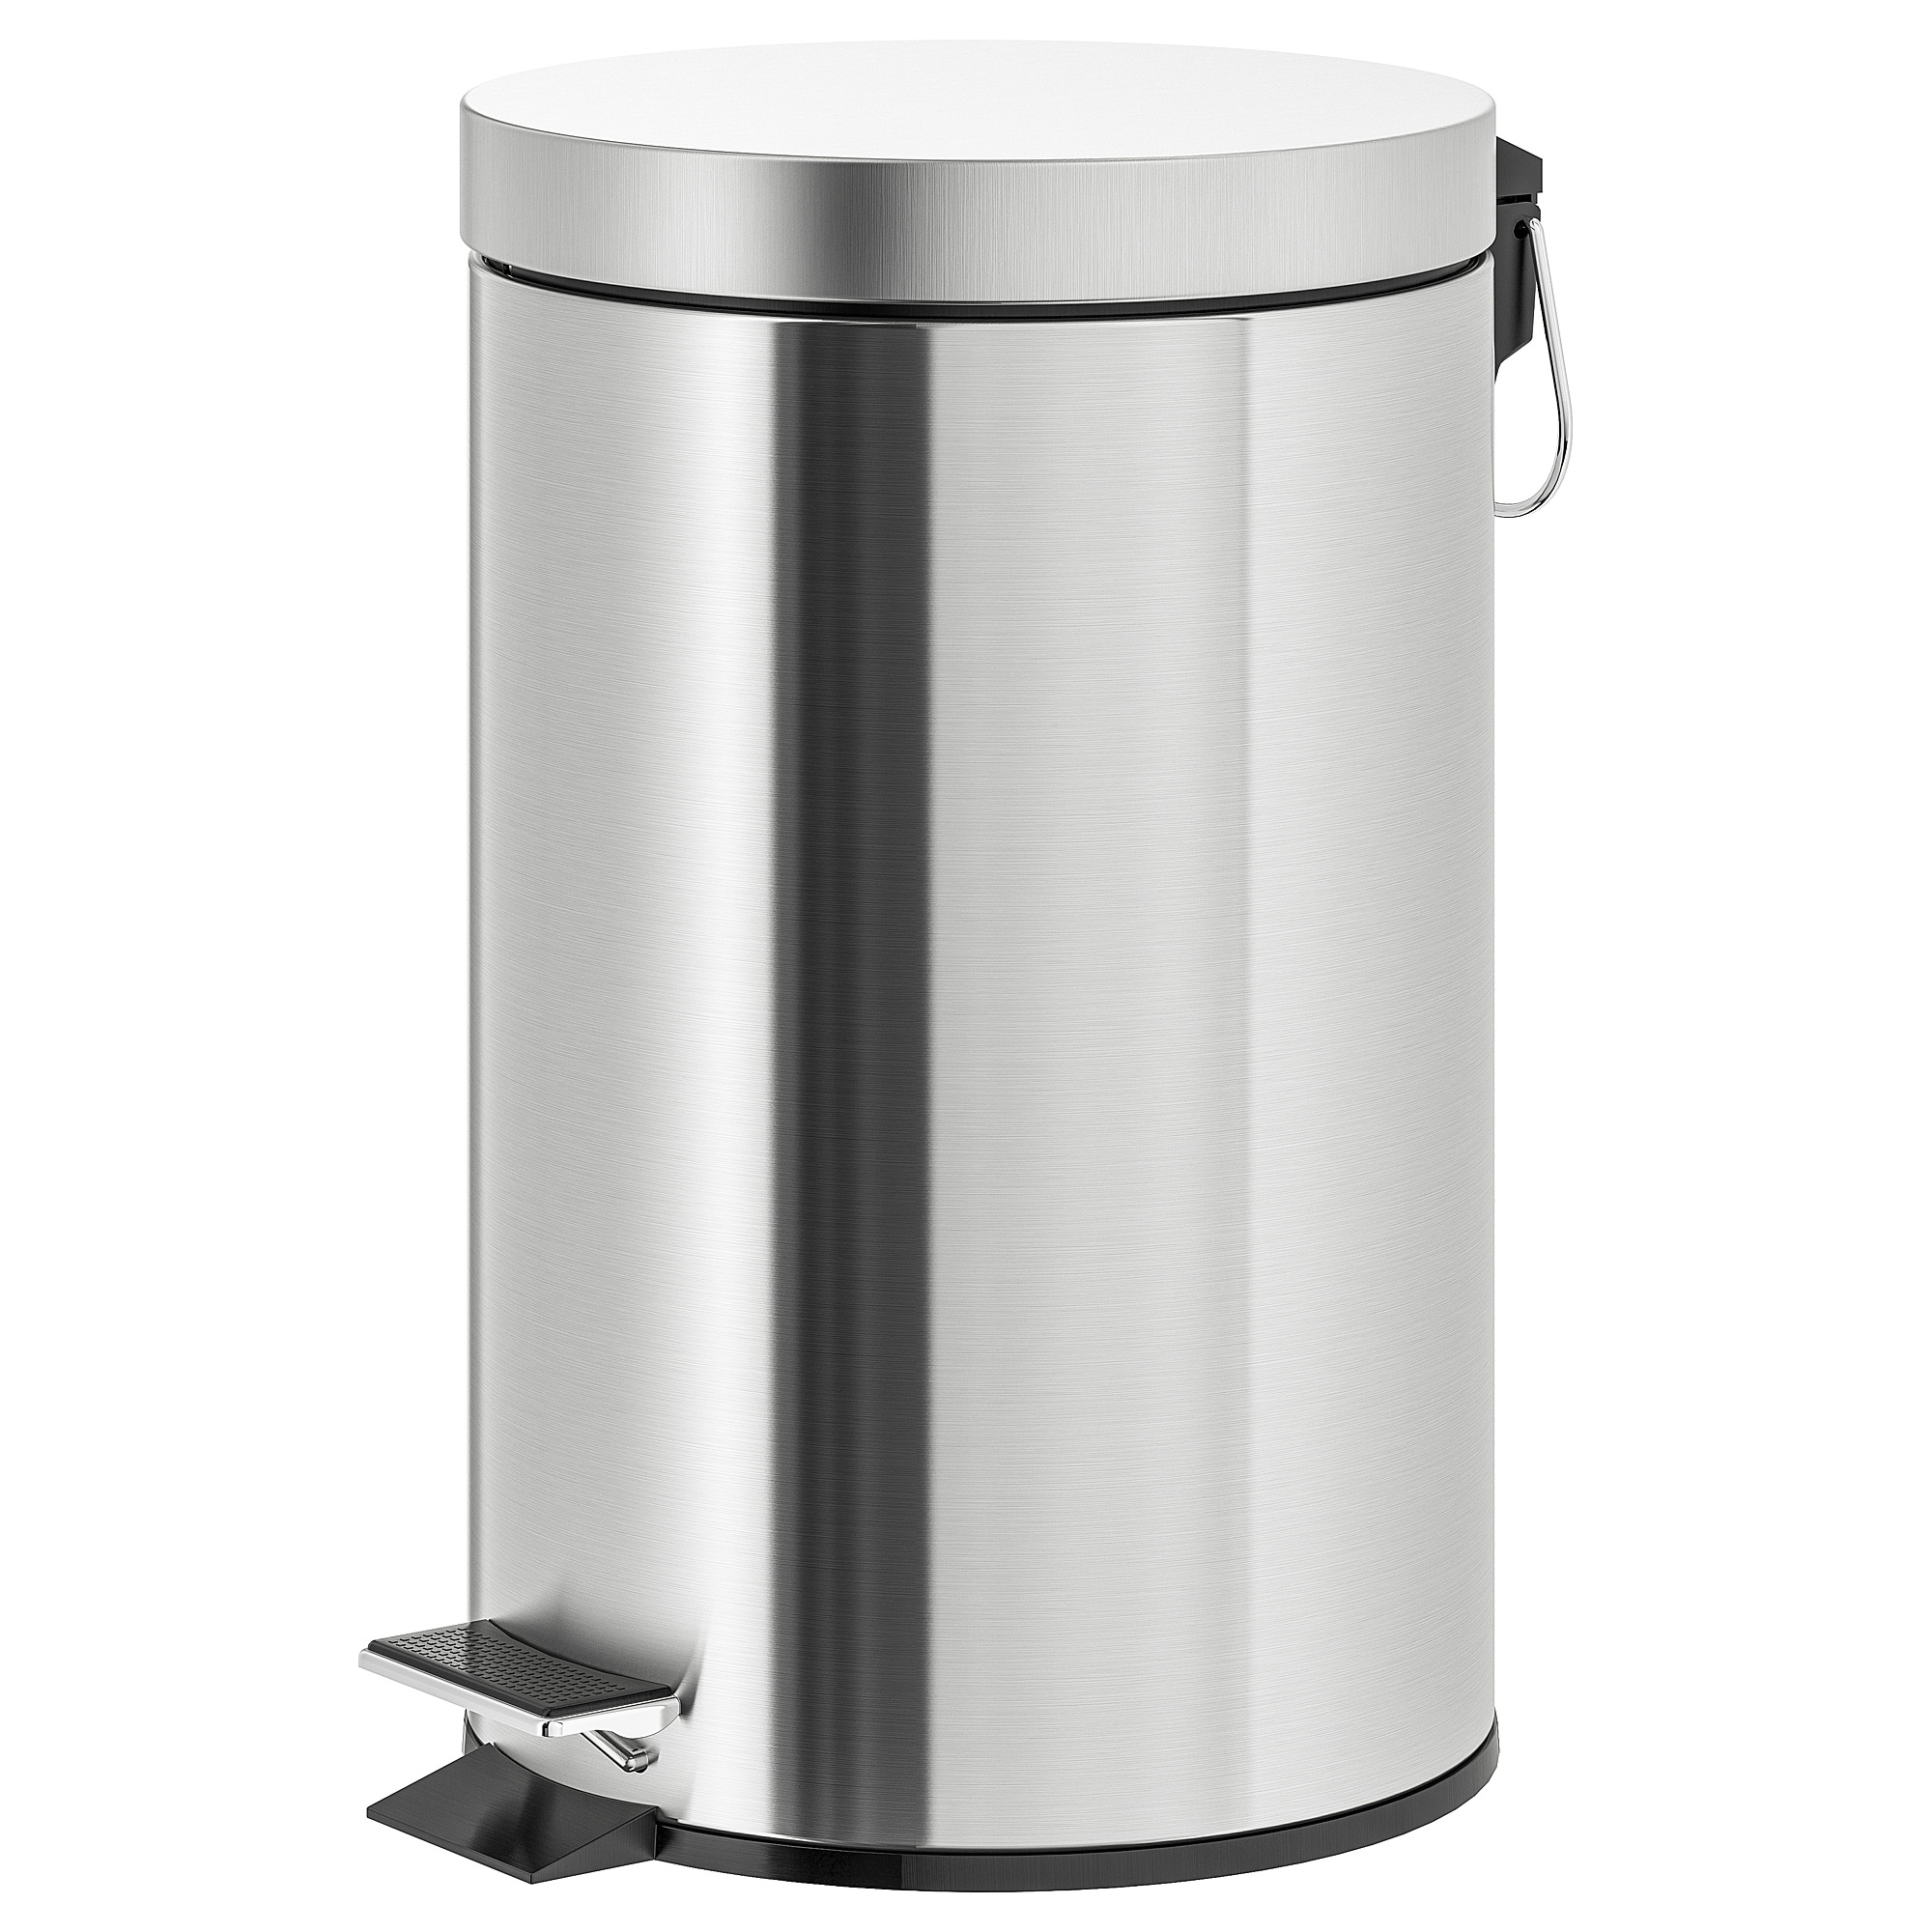 Strapats Pedal Bin Stainless Steel Ikea